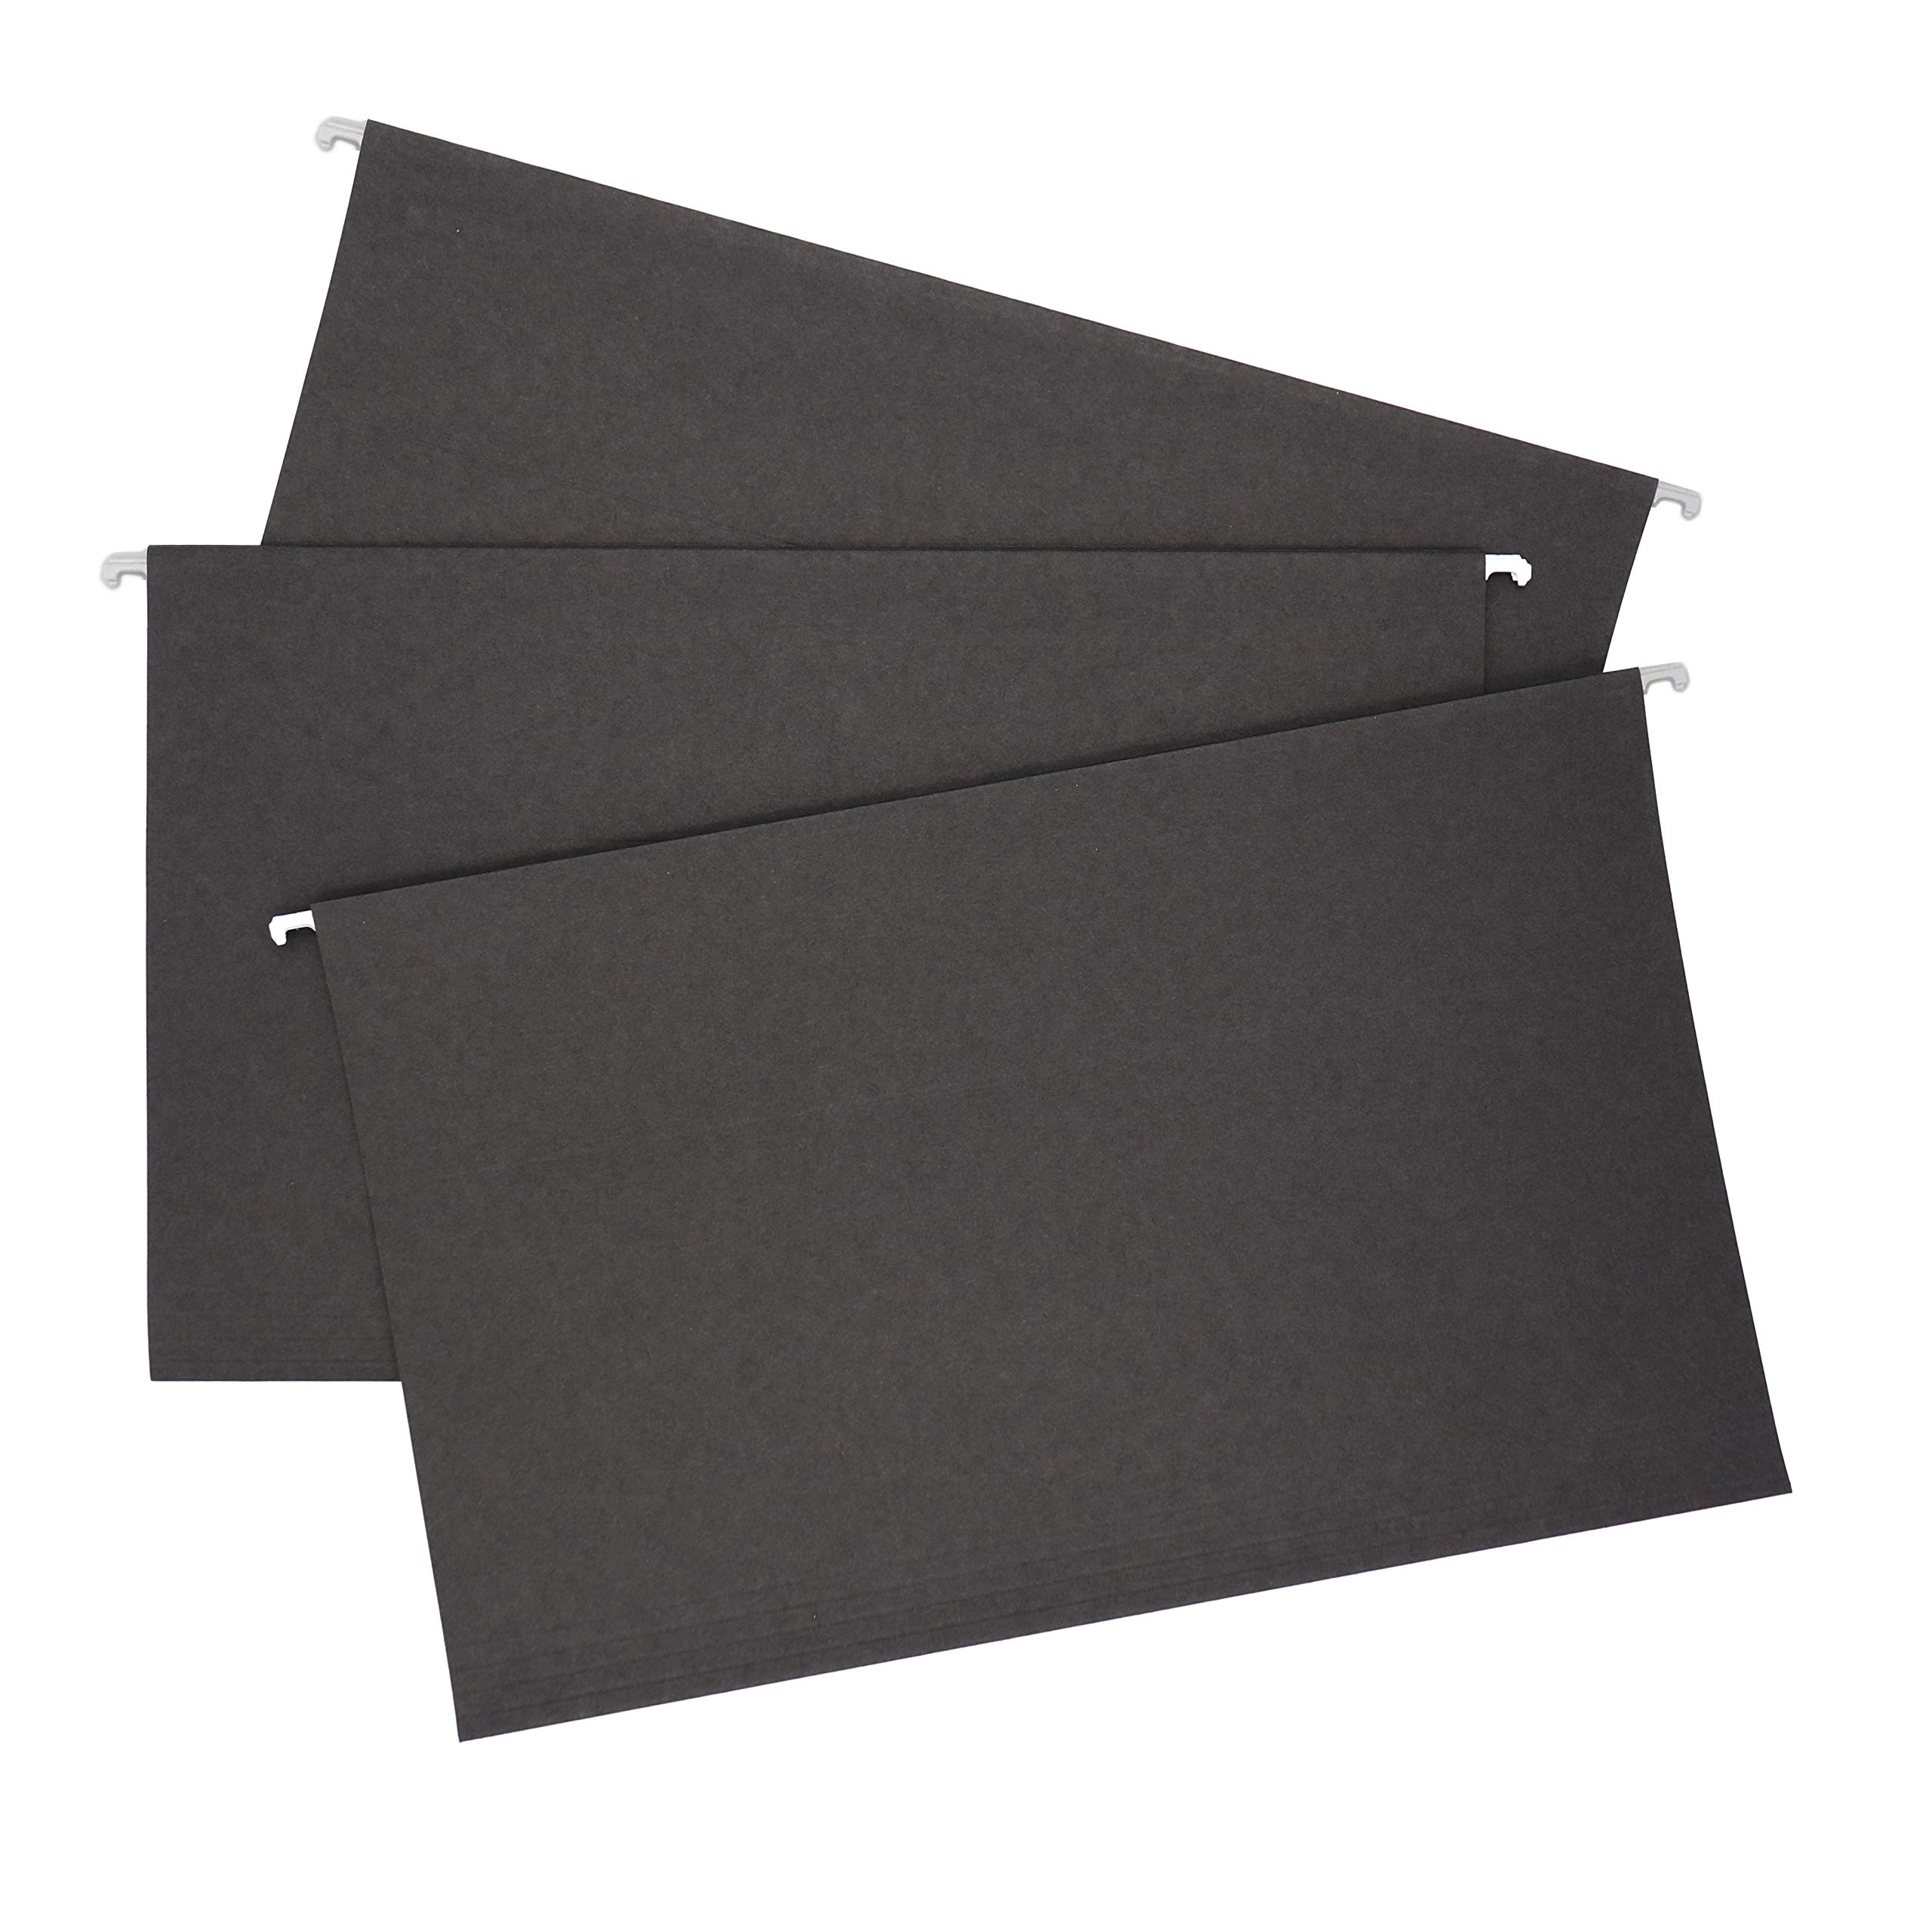 Smead Colored Hanging File Folder, Tabs Not Included, Legal Size, Black, 25 per Box (64477)